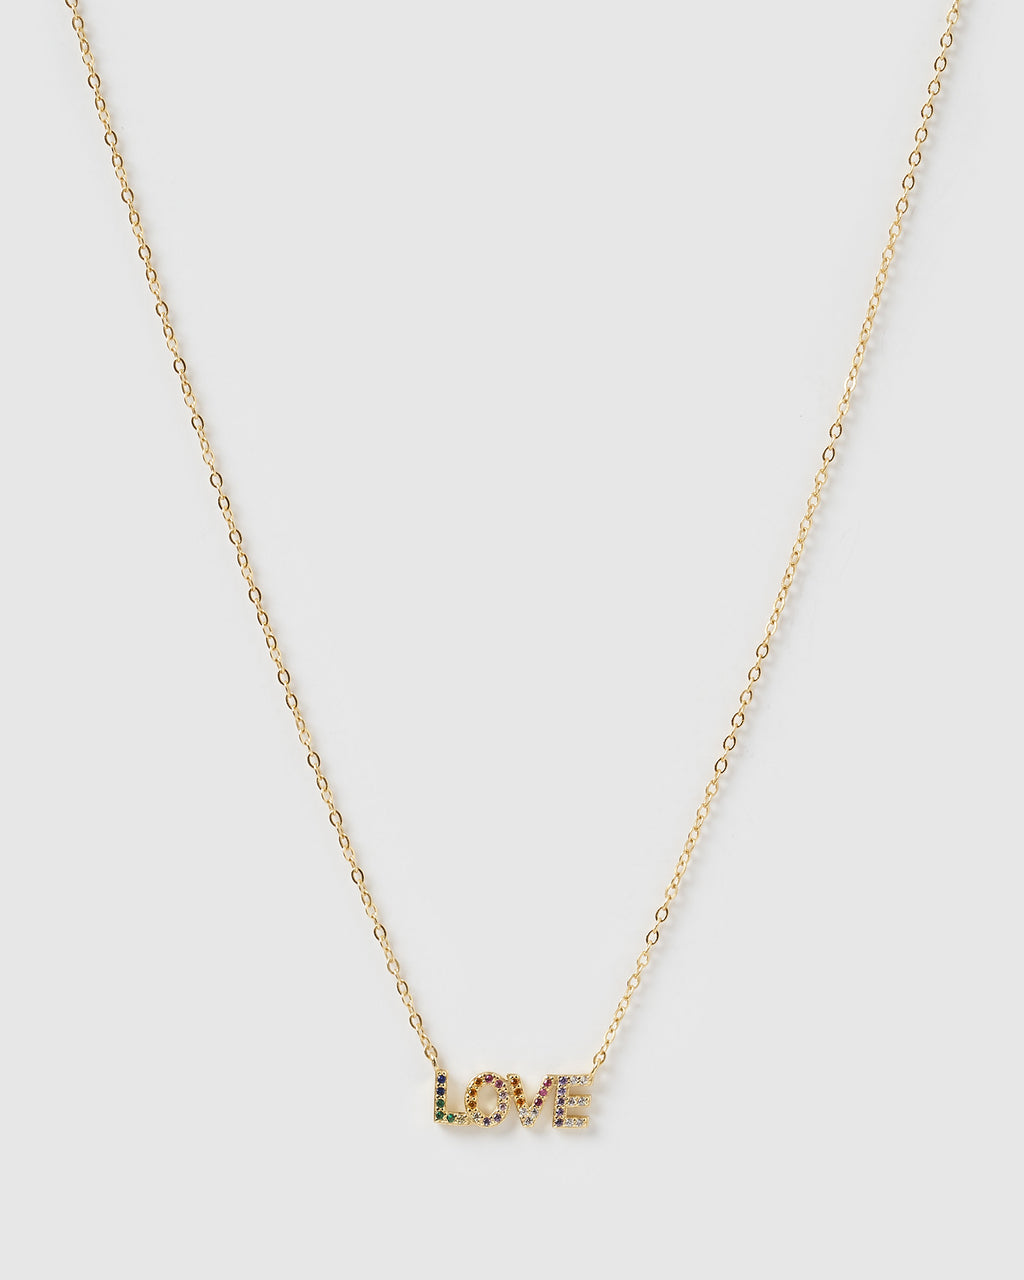 Izoa Love Necklace Gold Multi